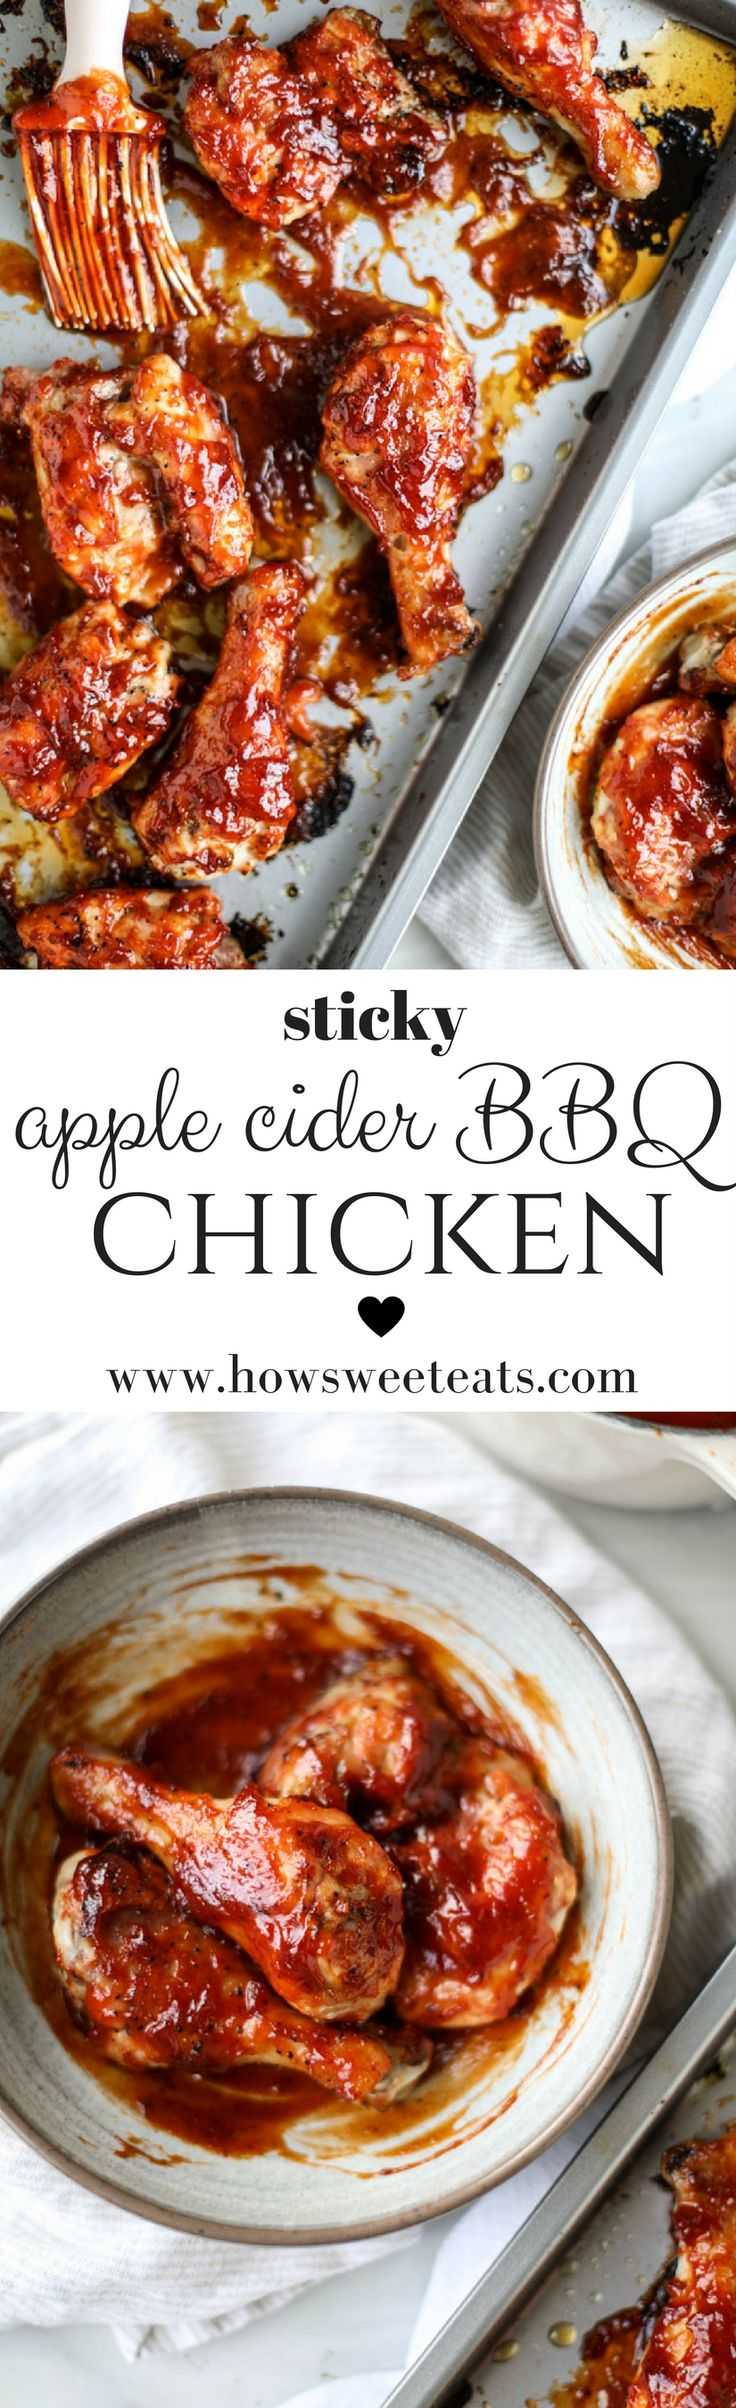 Sticky Apple Cider BBQ Chicken I howsweeteats.com @howsweeteats